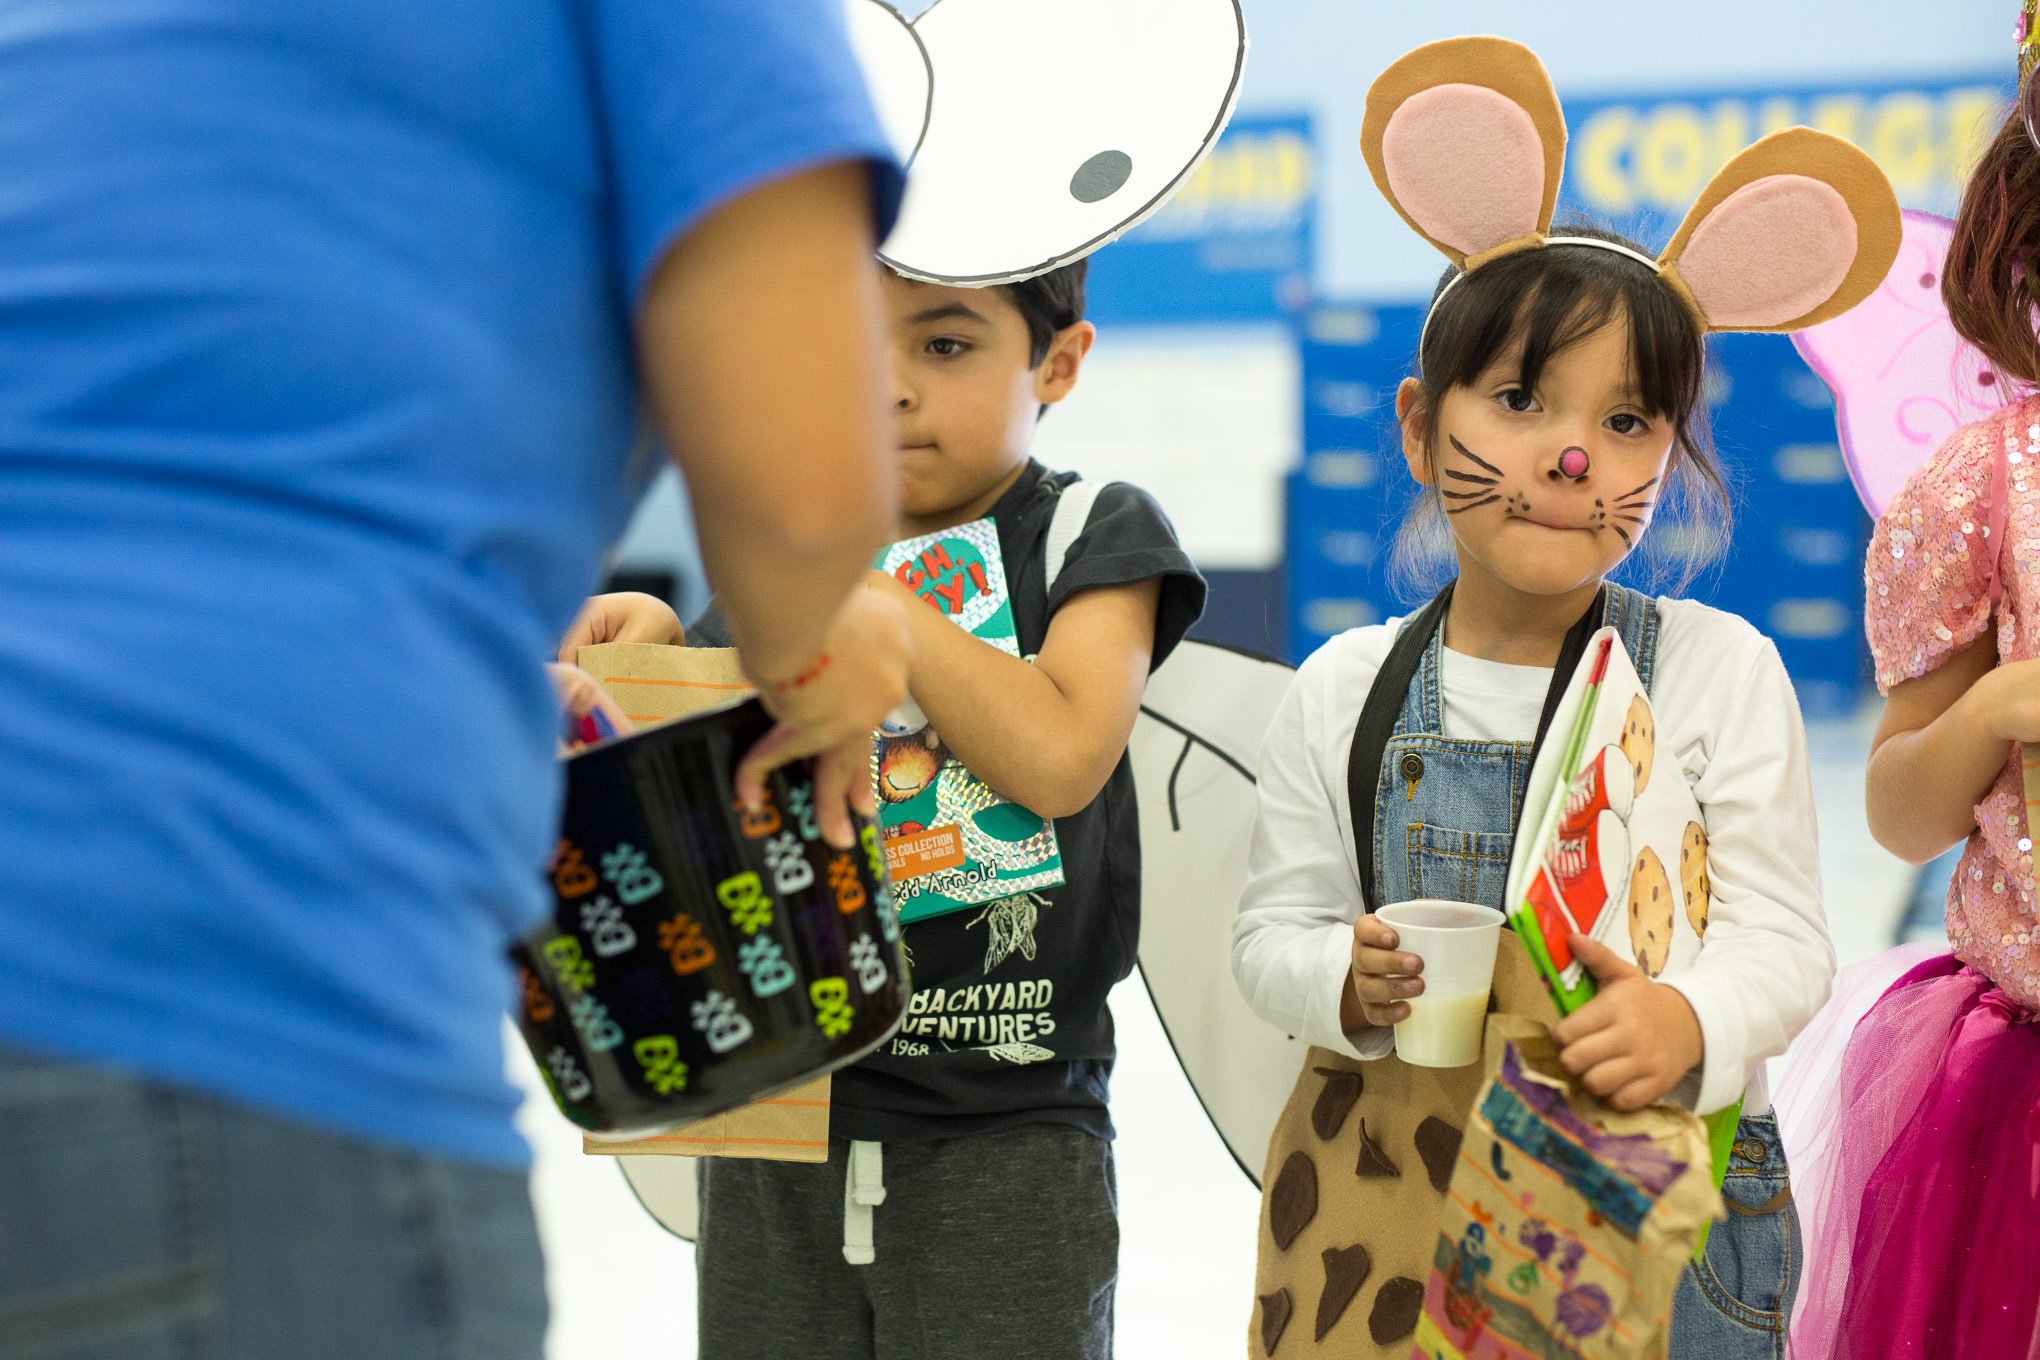 A student is dressed as 'If You Give a Mouse a Cookie' won the award for the cutest costume.